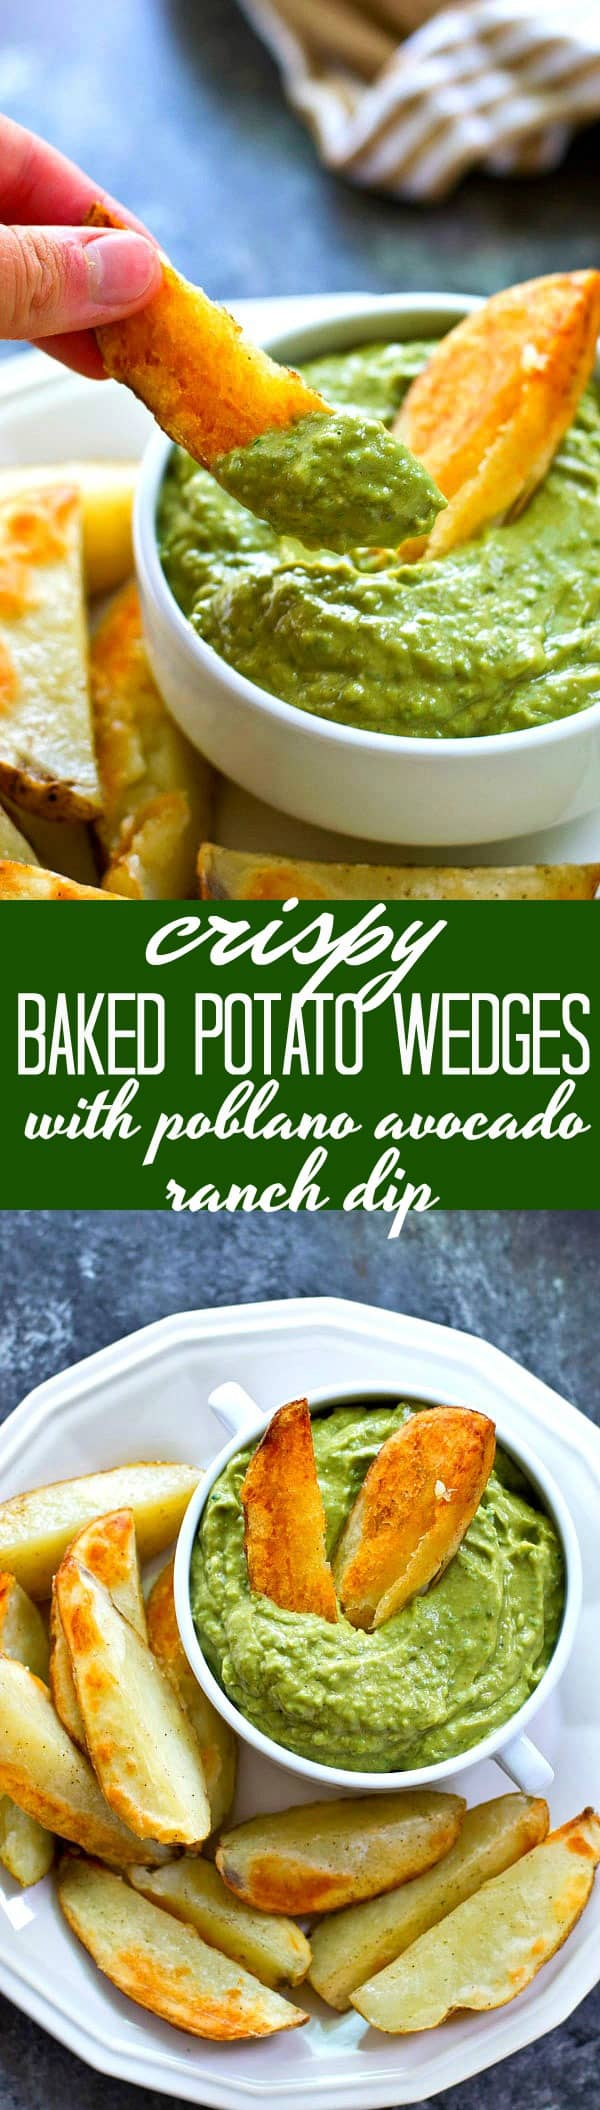 These crispiest-EVER baked potato wedges only need FIVE ingredients and are so easy to throw together! They're ridiculouslygood dipped in a spicy poblano avocado ranch dip.